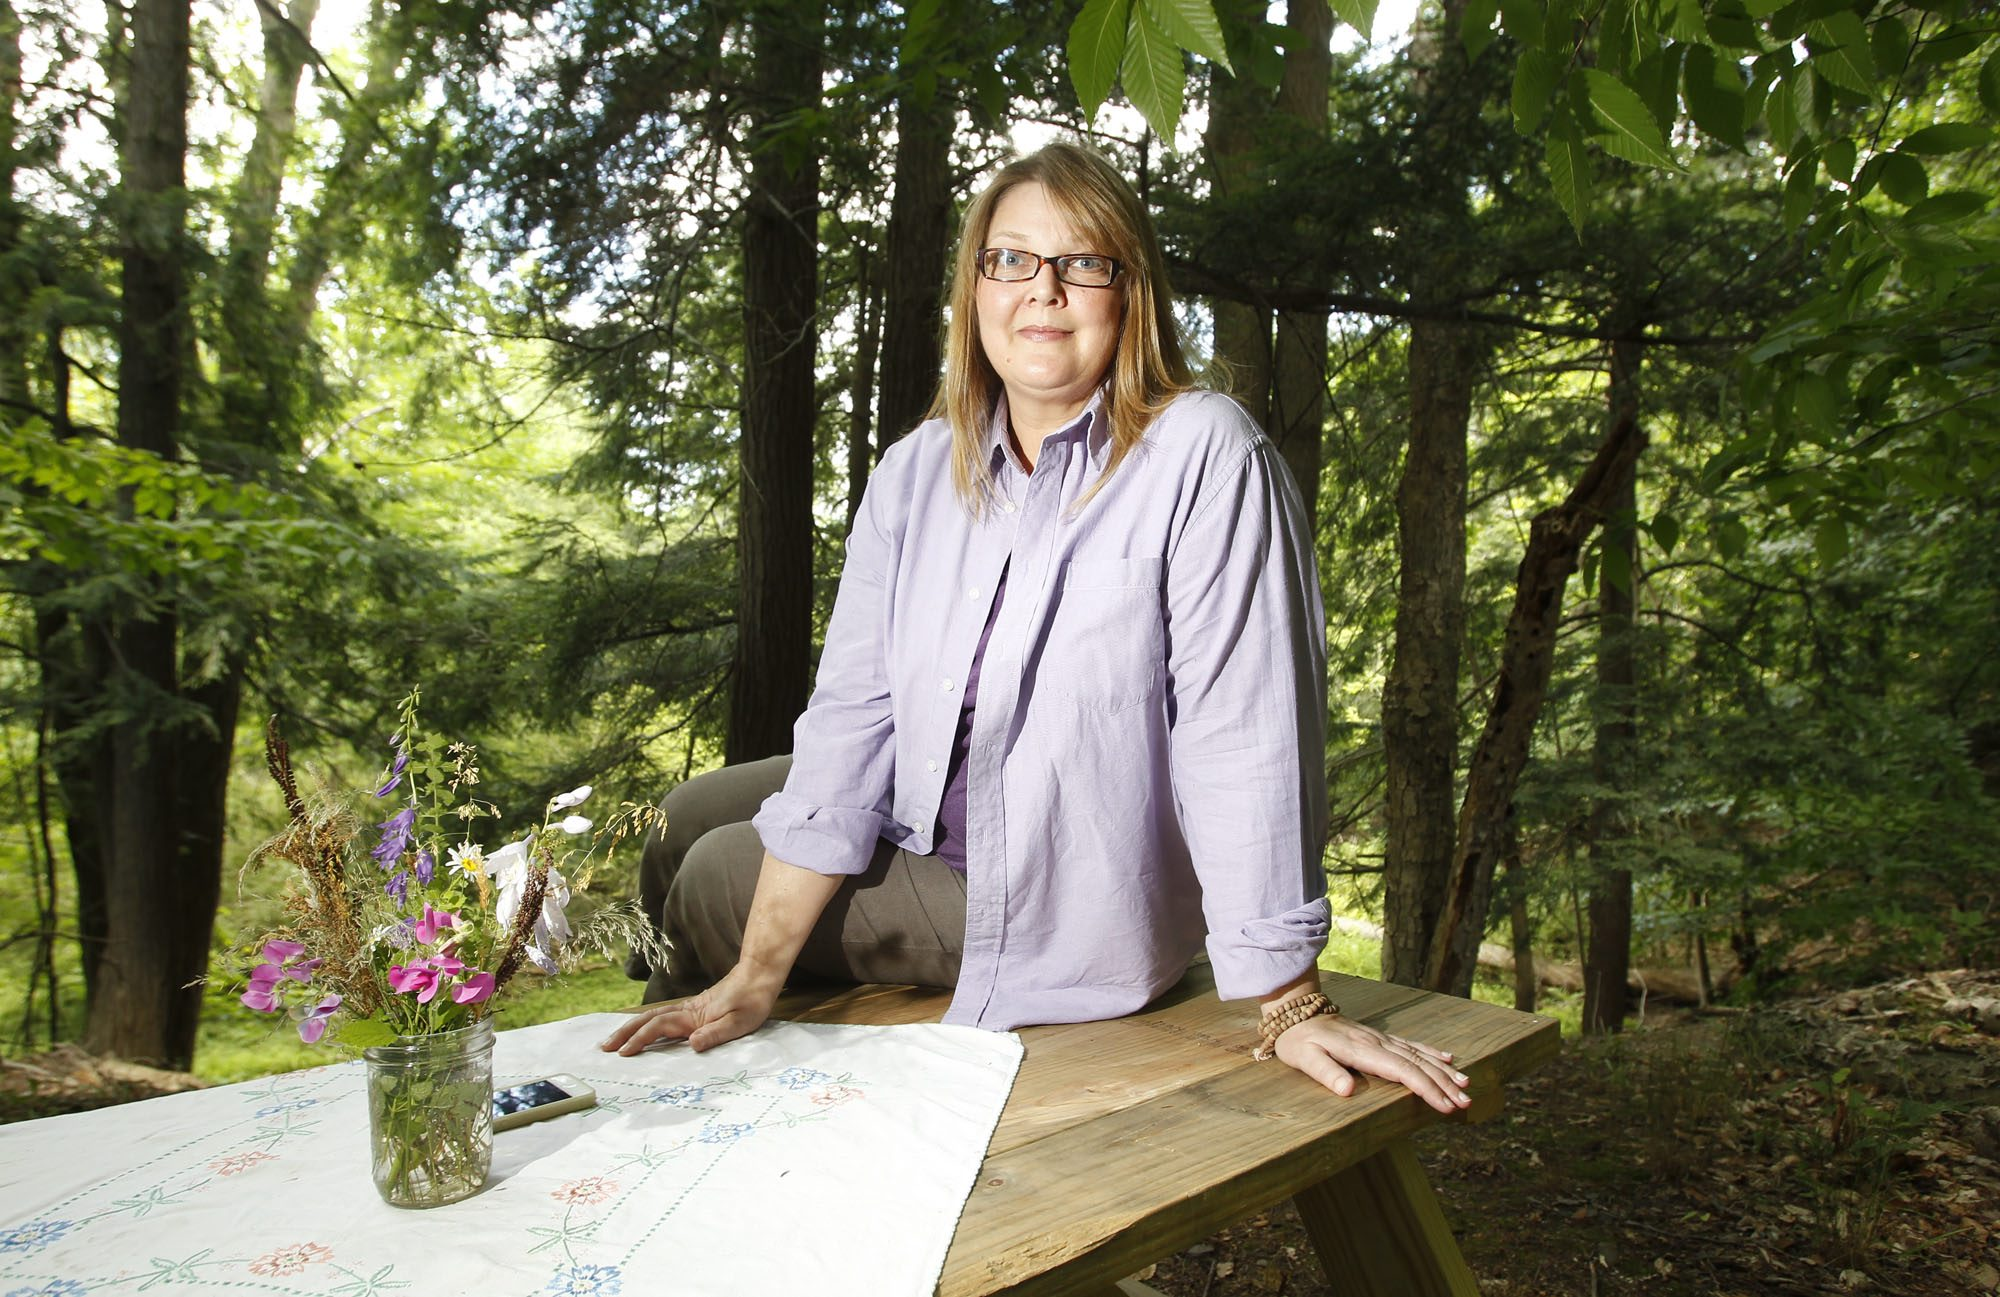 Artist Kateri Ewing focuses on nature in her work. (Harry Scull Jr. / News file photo)